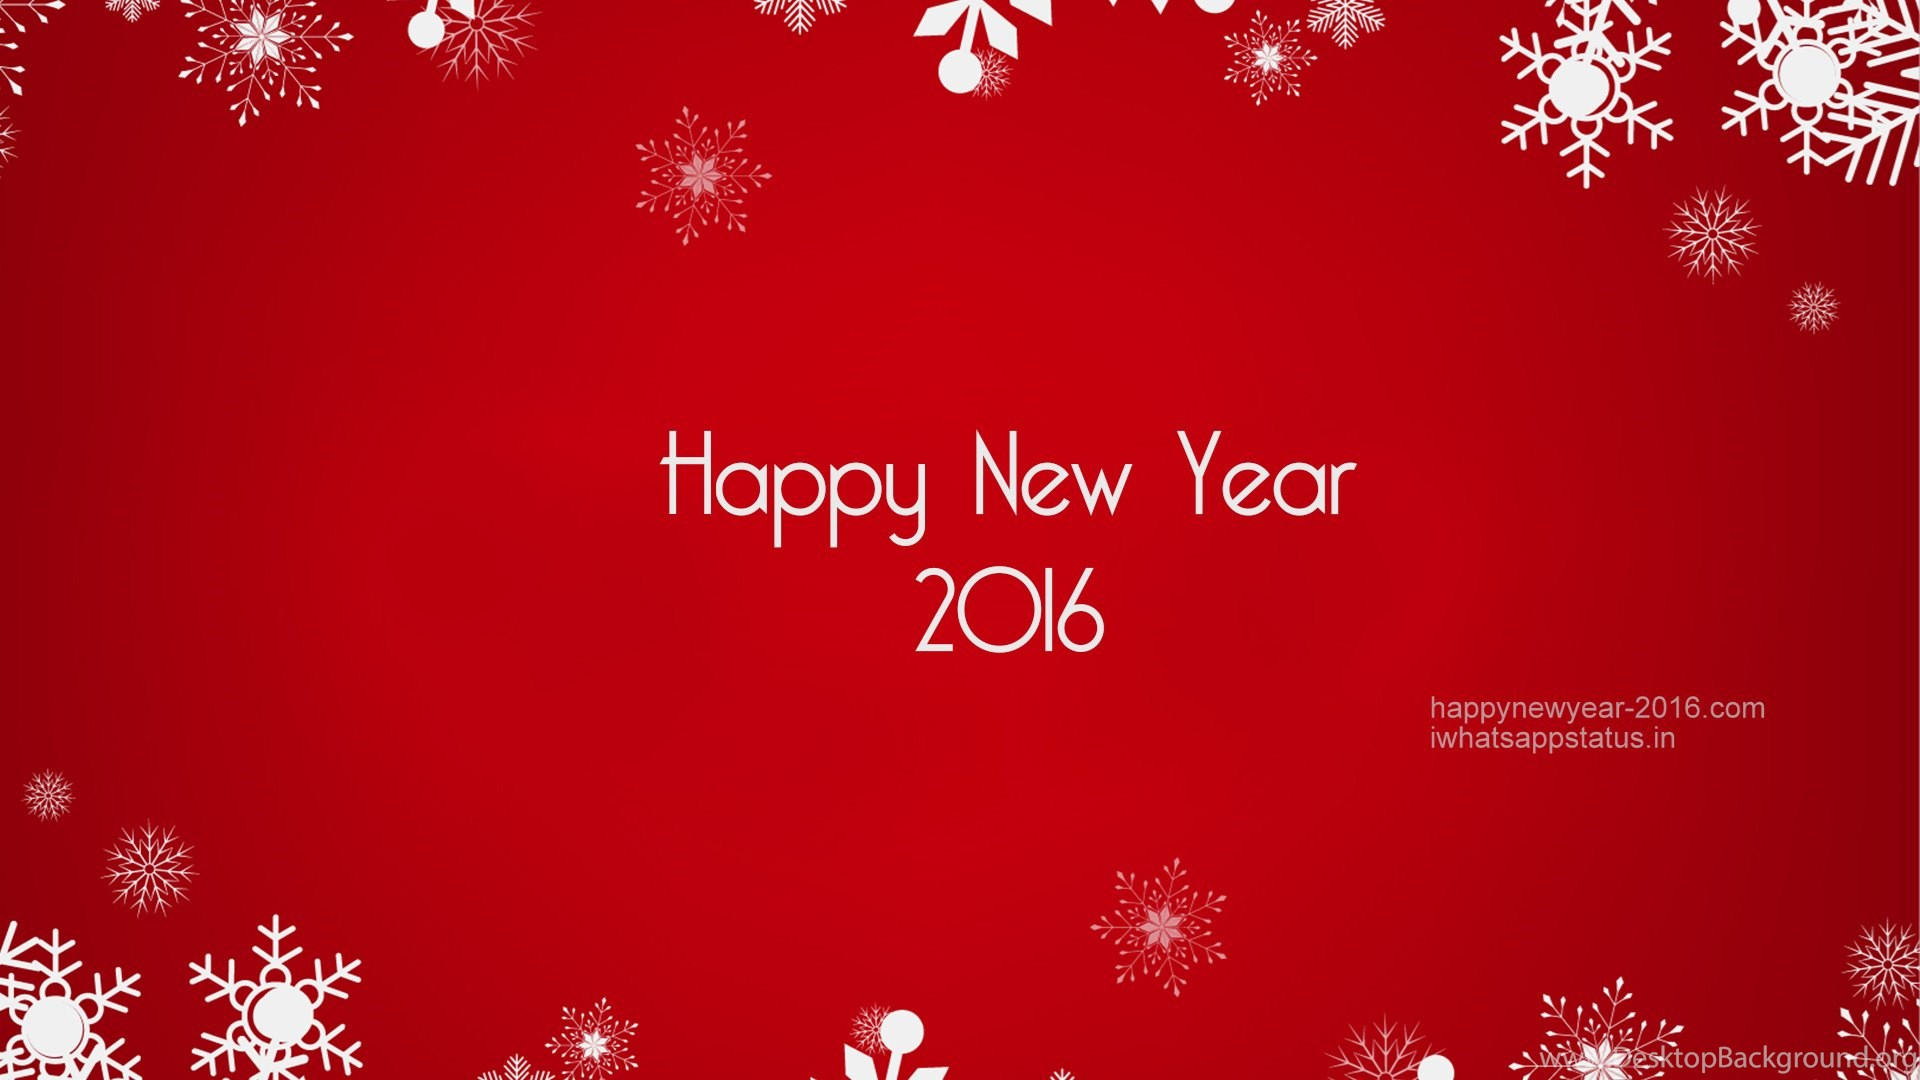 HD*} Happy New Year 2016 Images Wallpapers FB Quotes Pic For PC ...